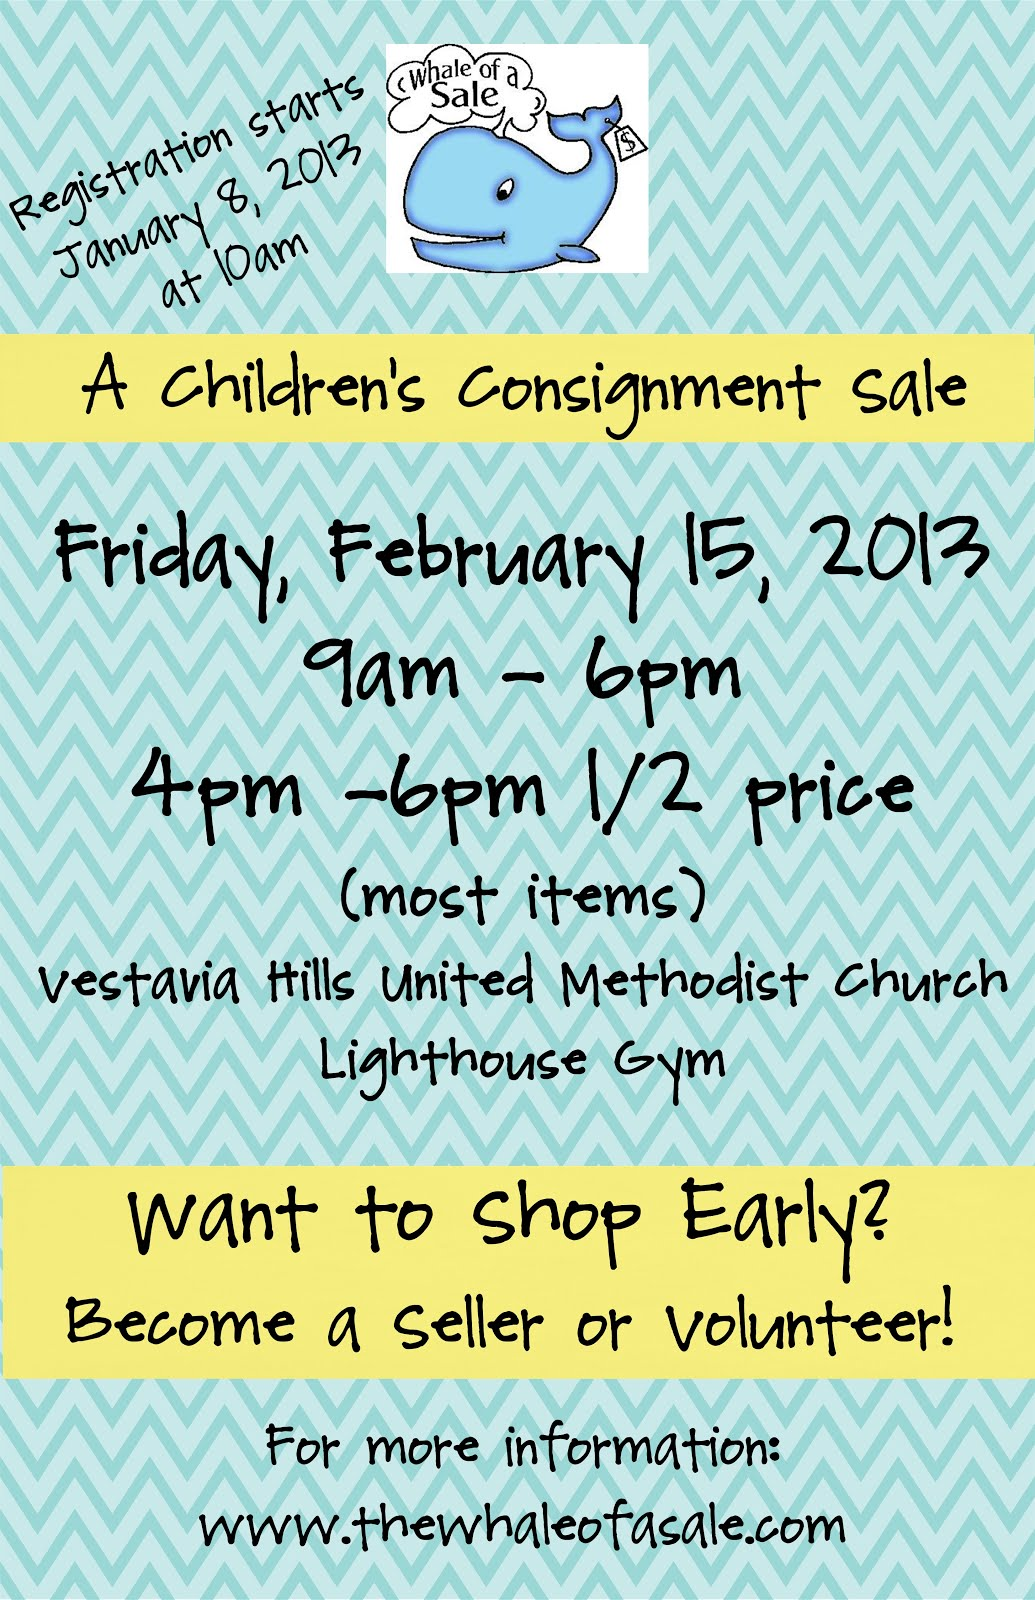 Whale of A Sale ~ A Children's Consignment Sale